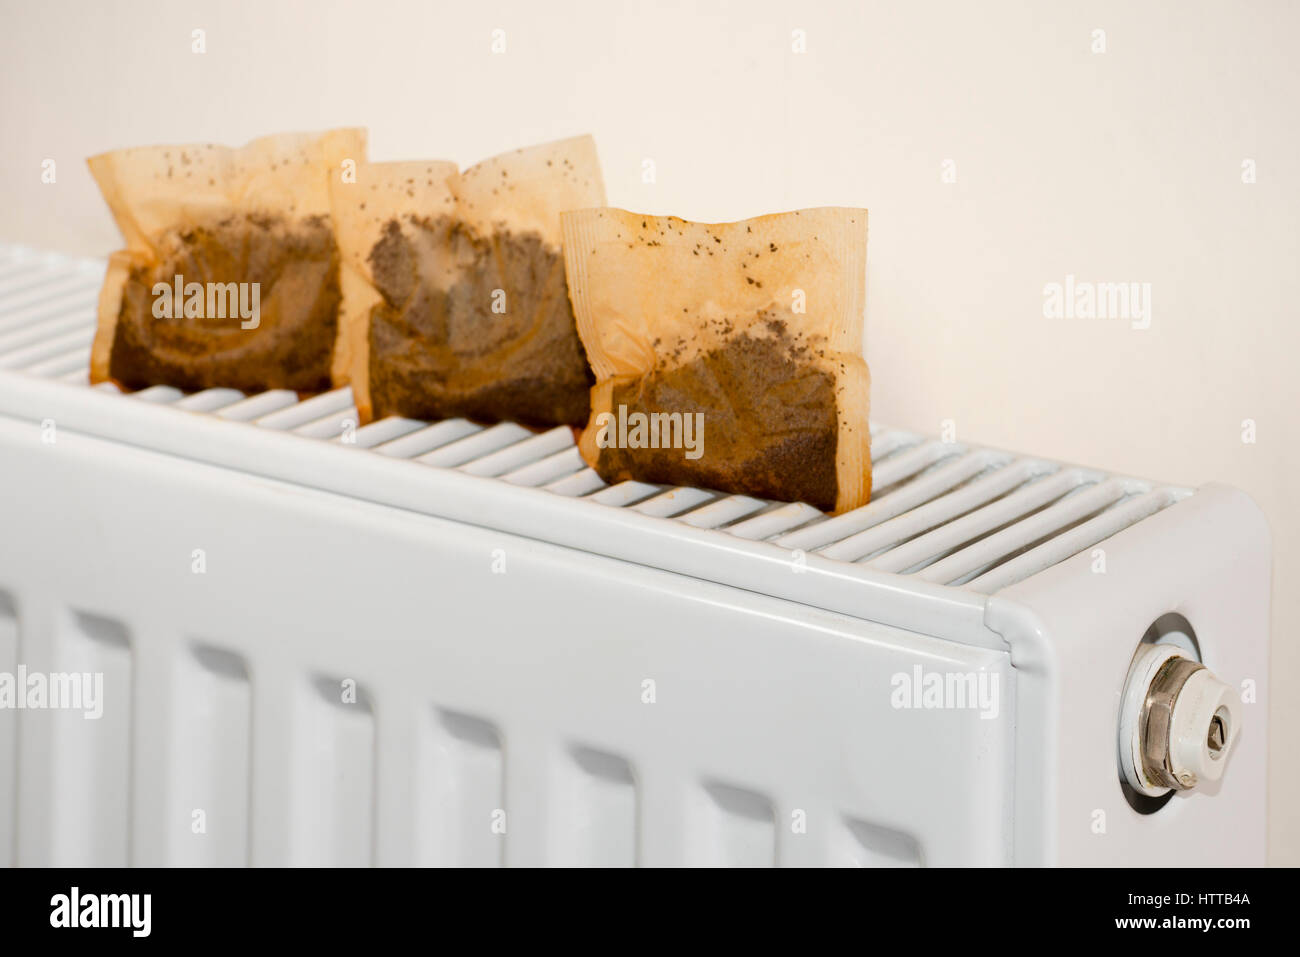 Used tea bags drying on a radiator. Money saving frugal lifestyle concept. - Stock Image